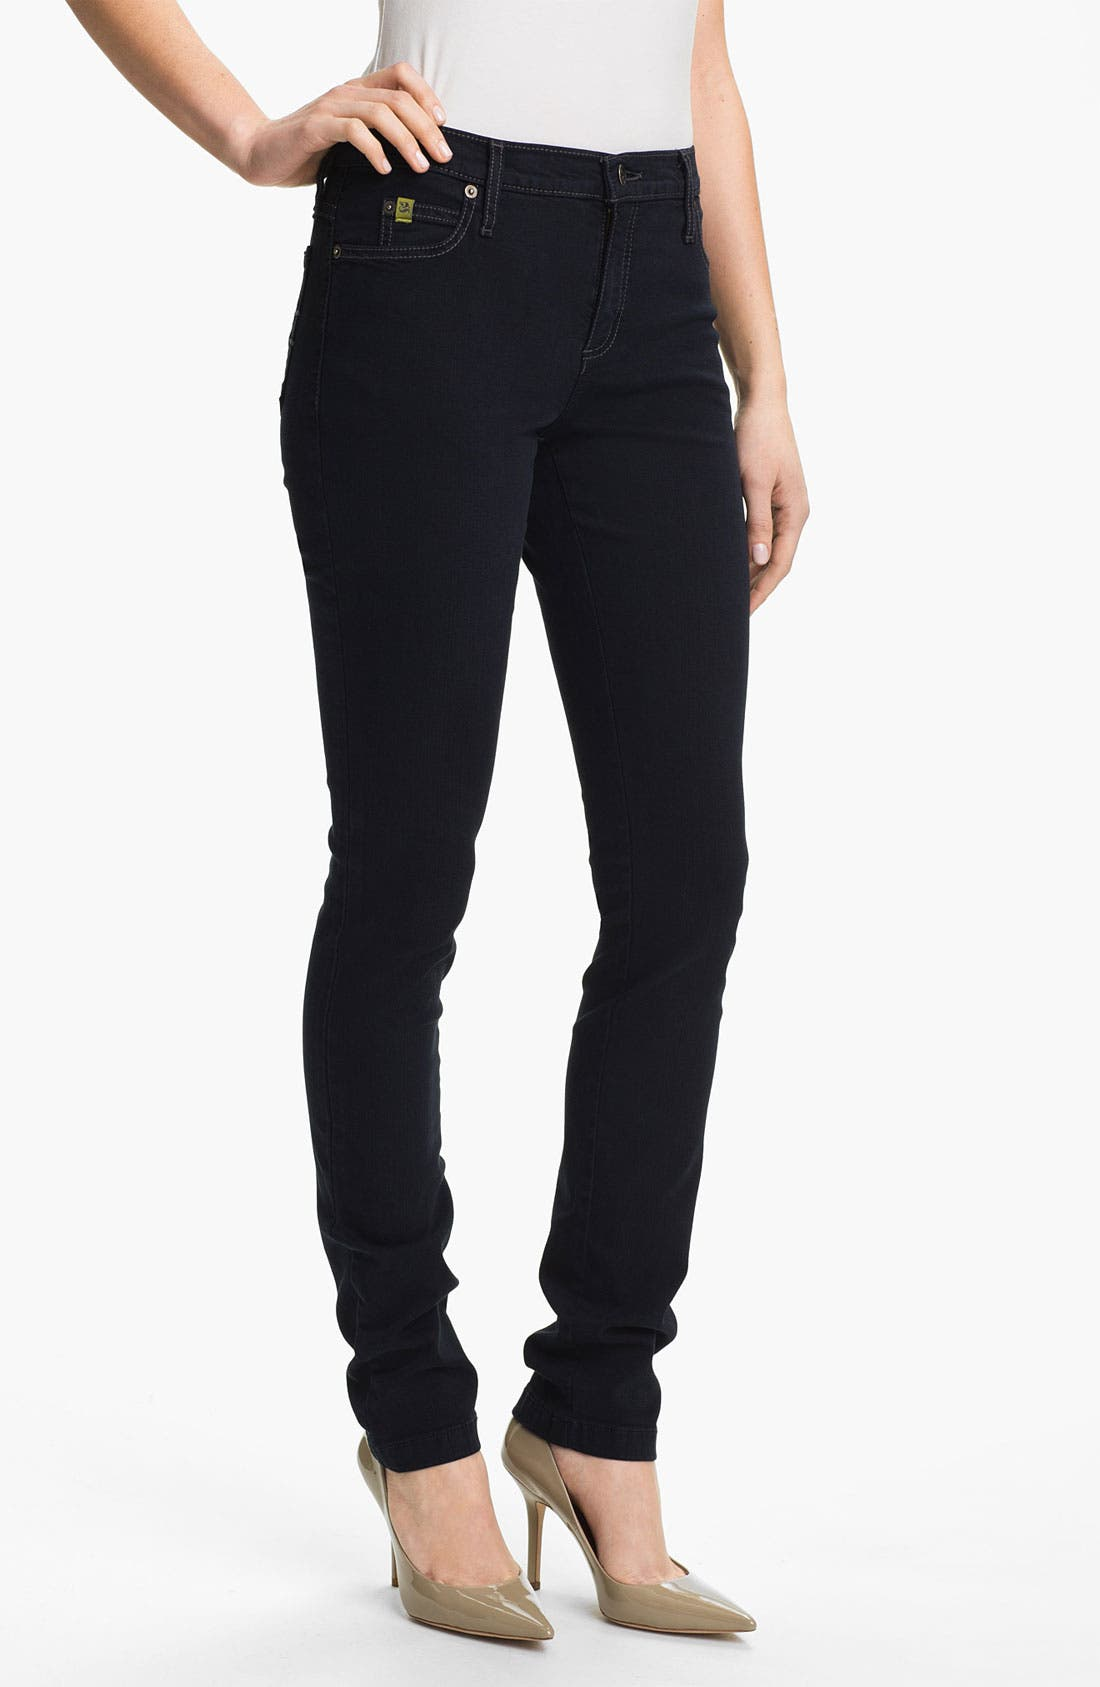 Main Image - Yoga Jeans by Second Denim Skinny Jeans